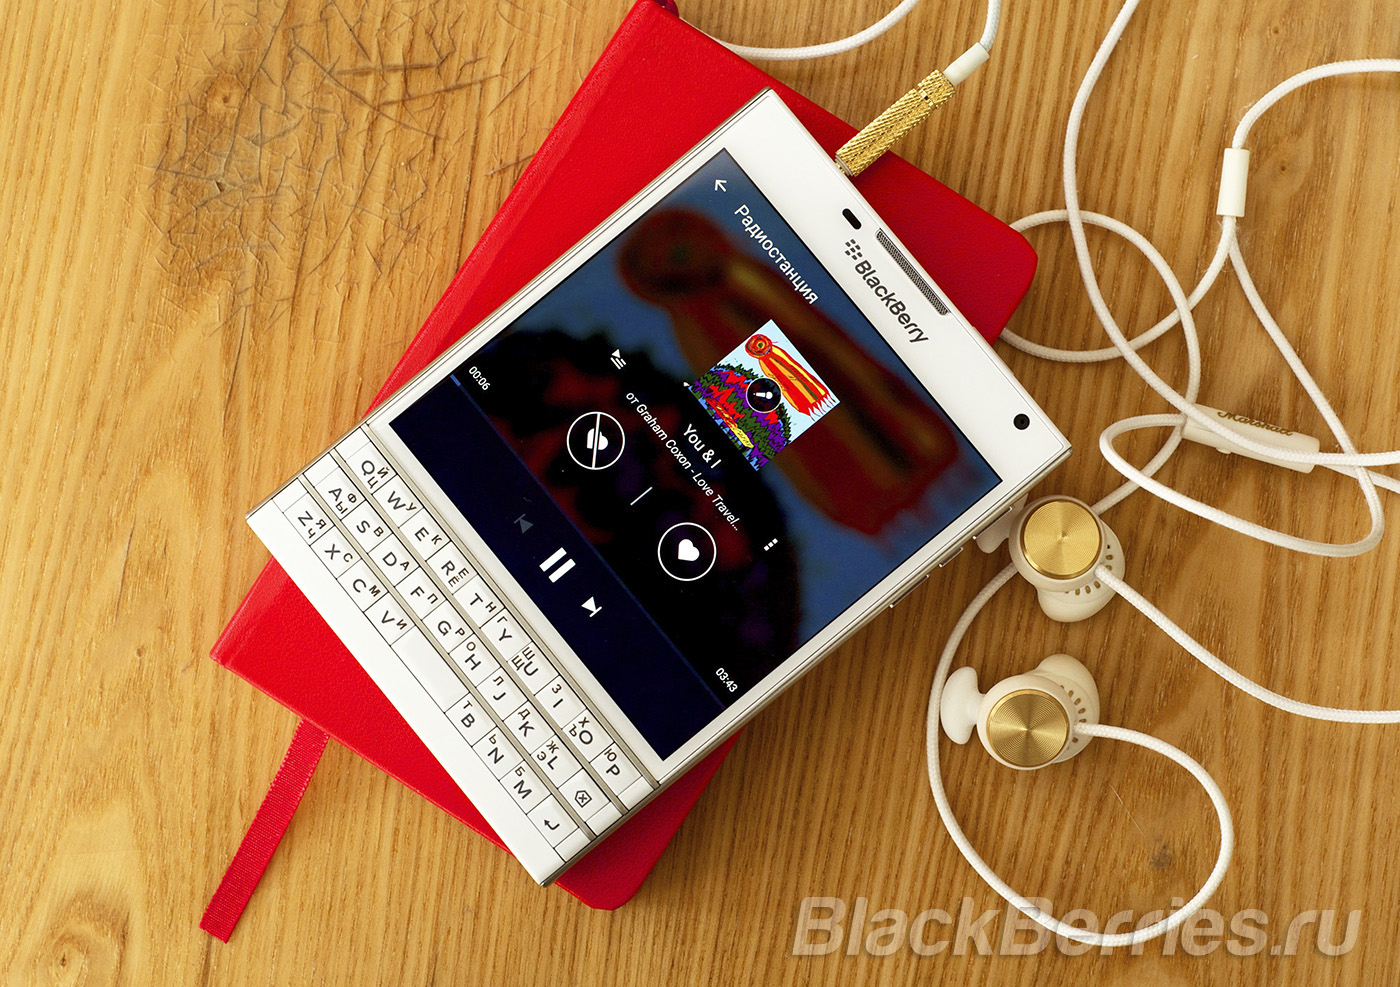 BlackBerry-Passport-Music-Apps-10